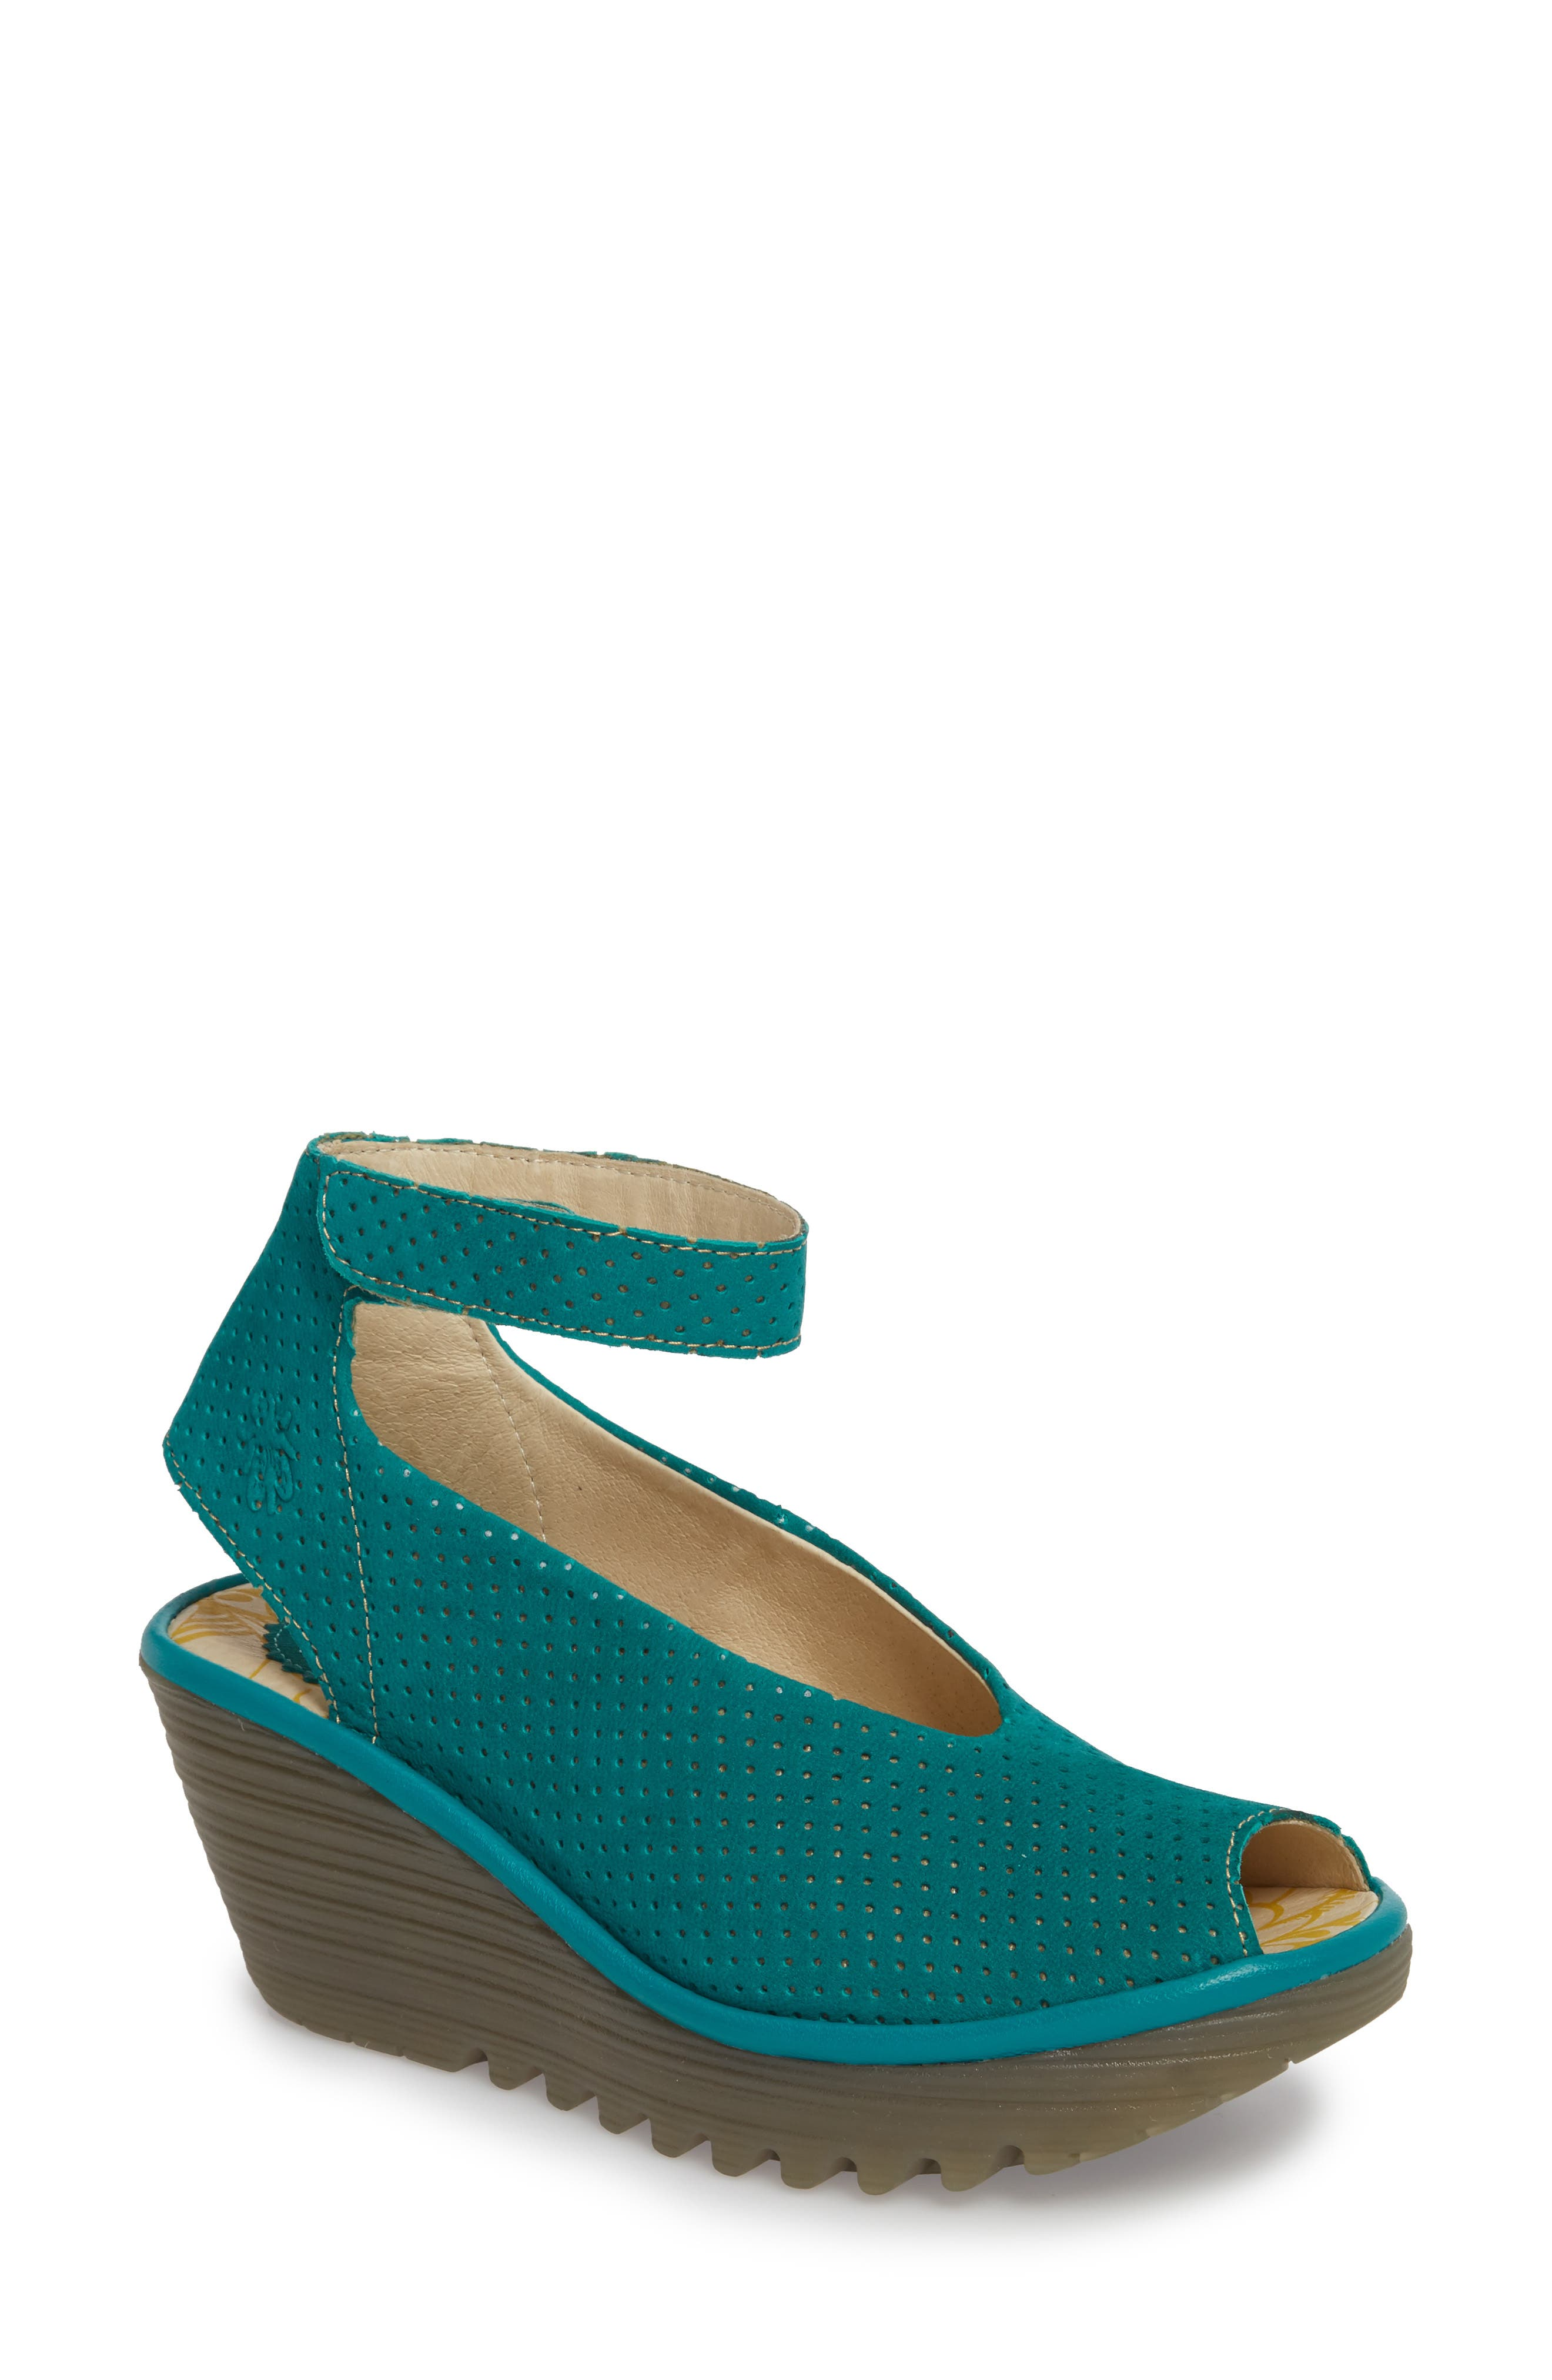 'Yala' Perforated Leather Sandal,                             Main thumbnail 1, color,                             Green Leather